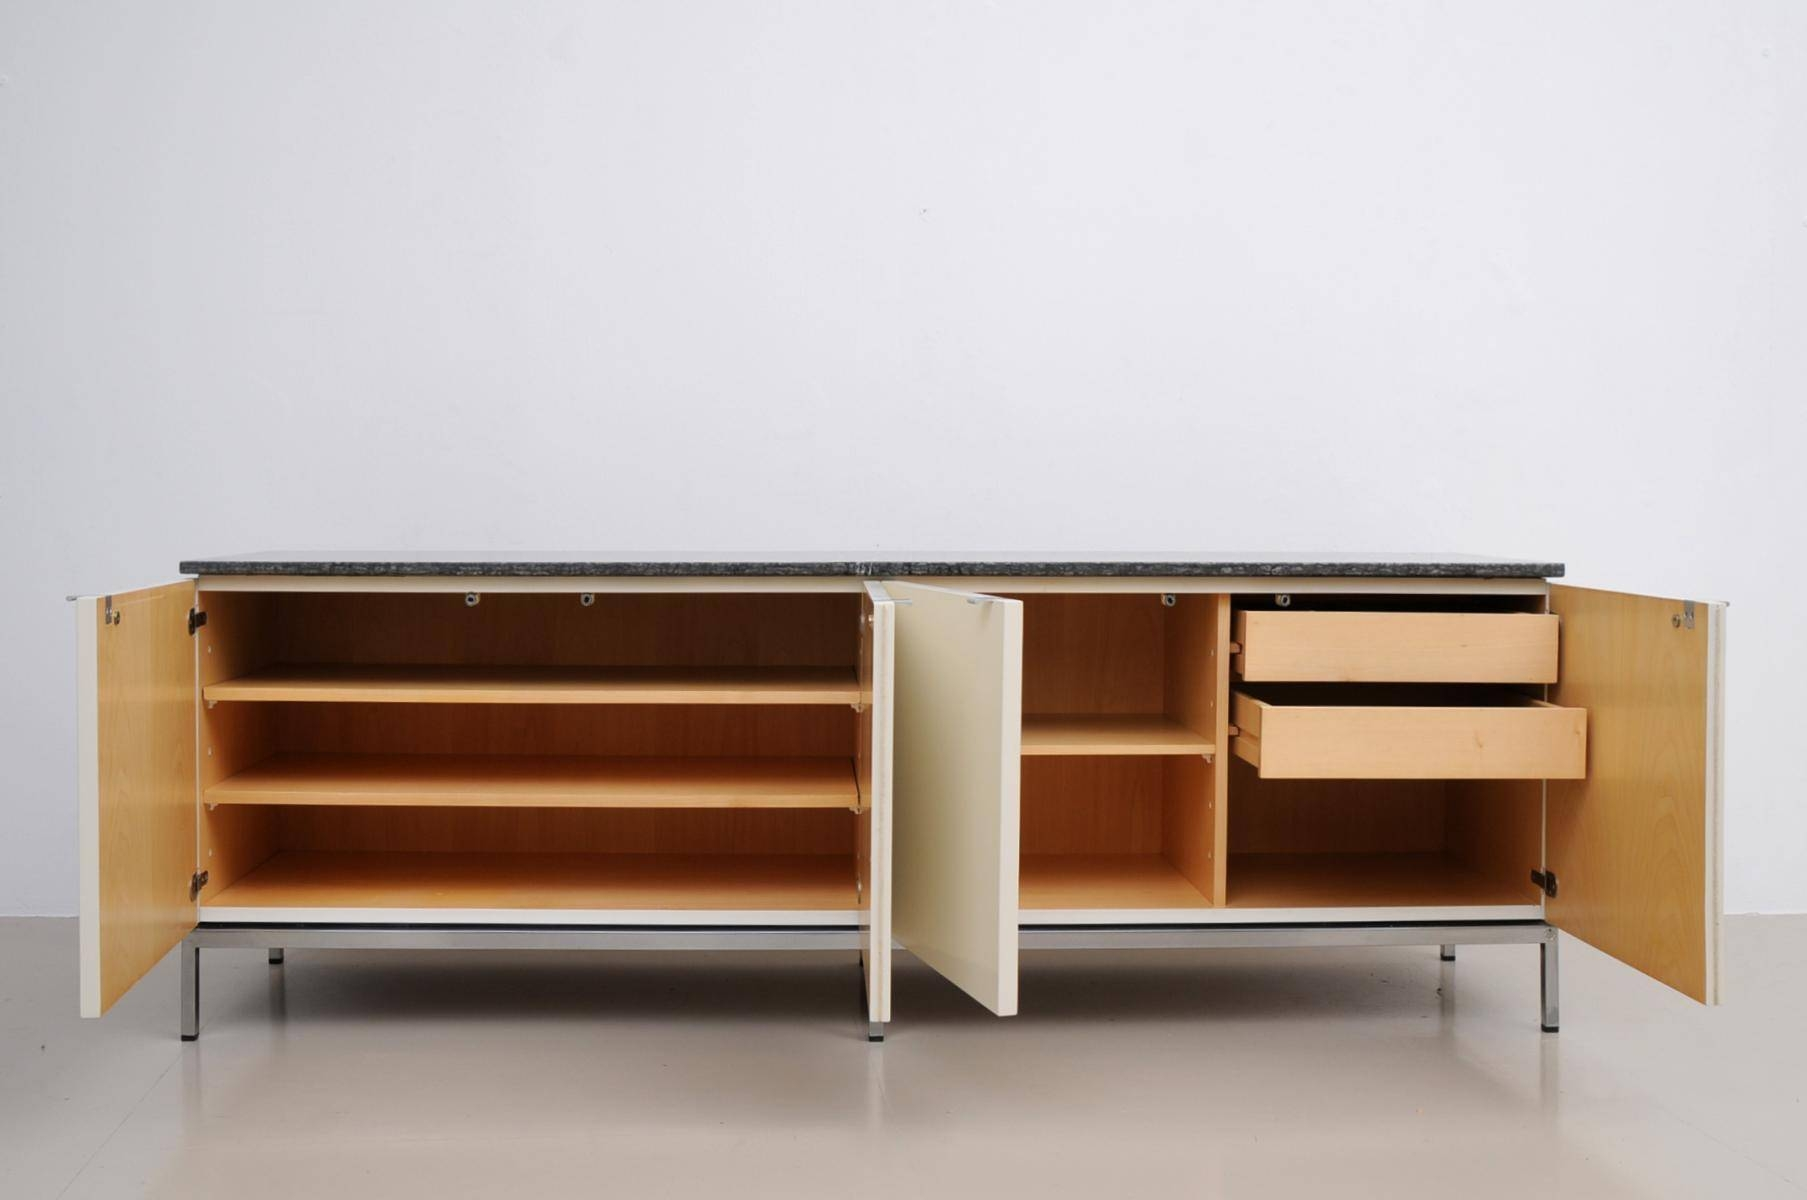 German Marble Top Sideboardflorence Knoll For Knoll with regard to Sideboards With Marble Tops (Image 10 of 15)